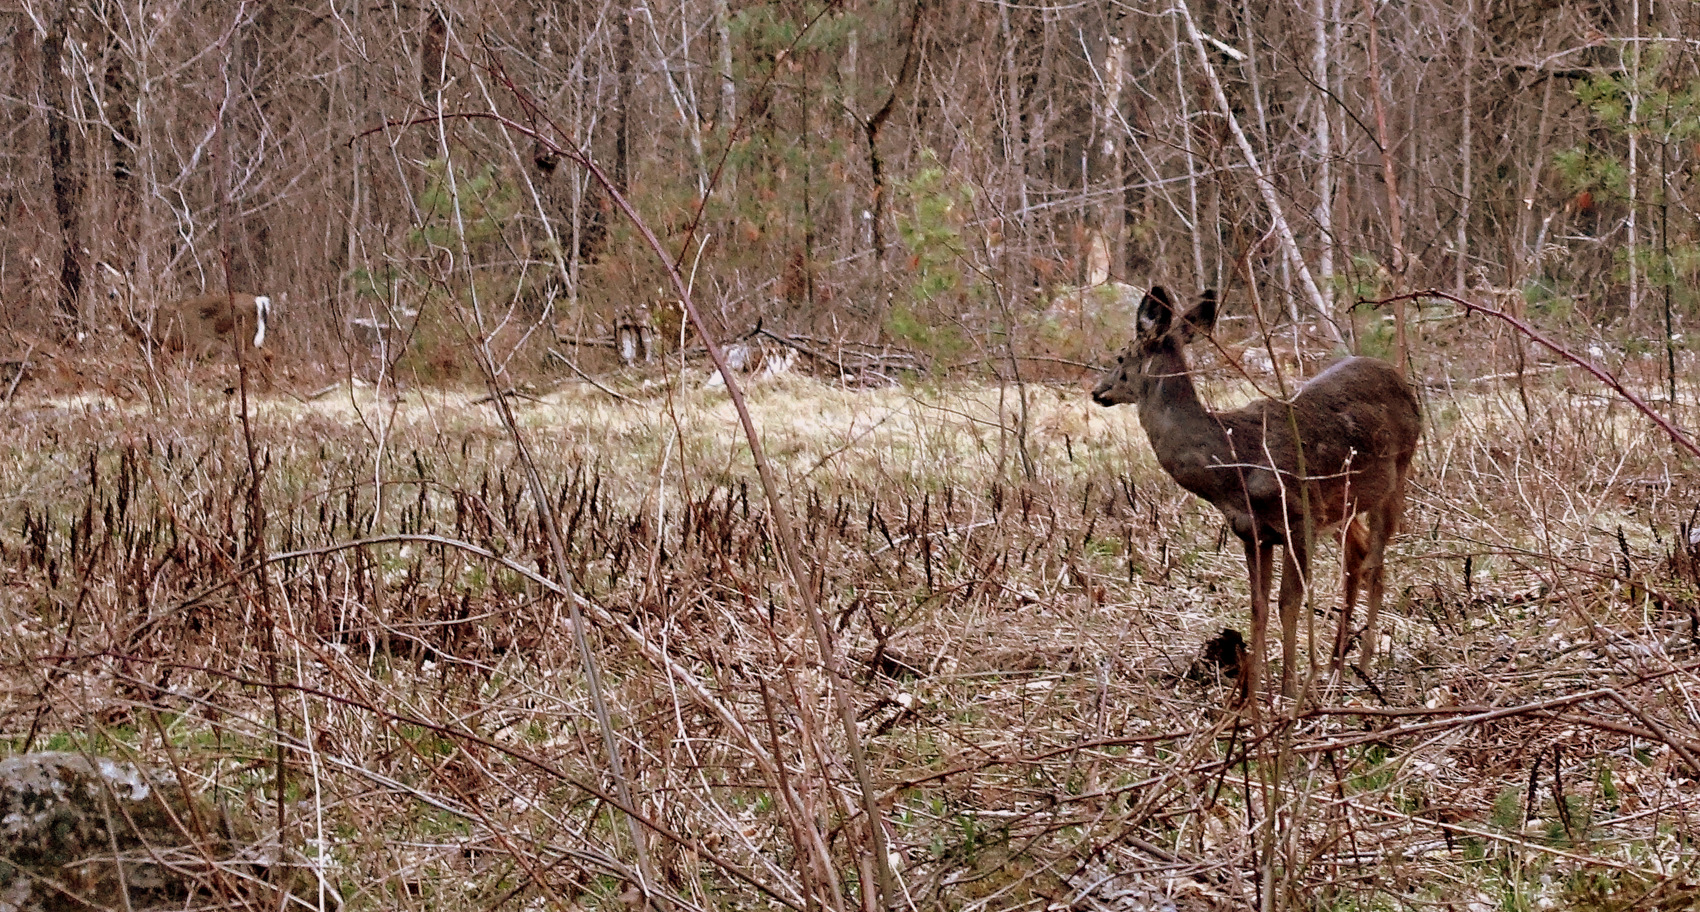 Deer on the trail - photo - Rob vandermark.JPG